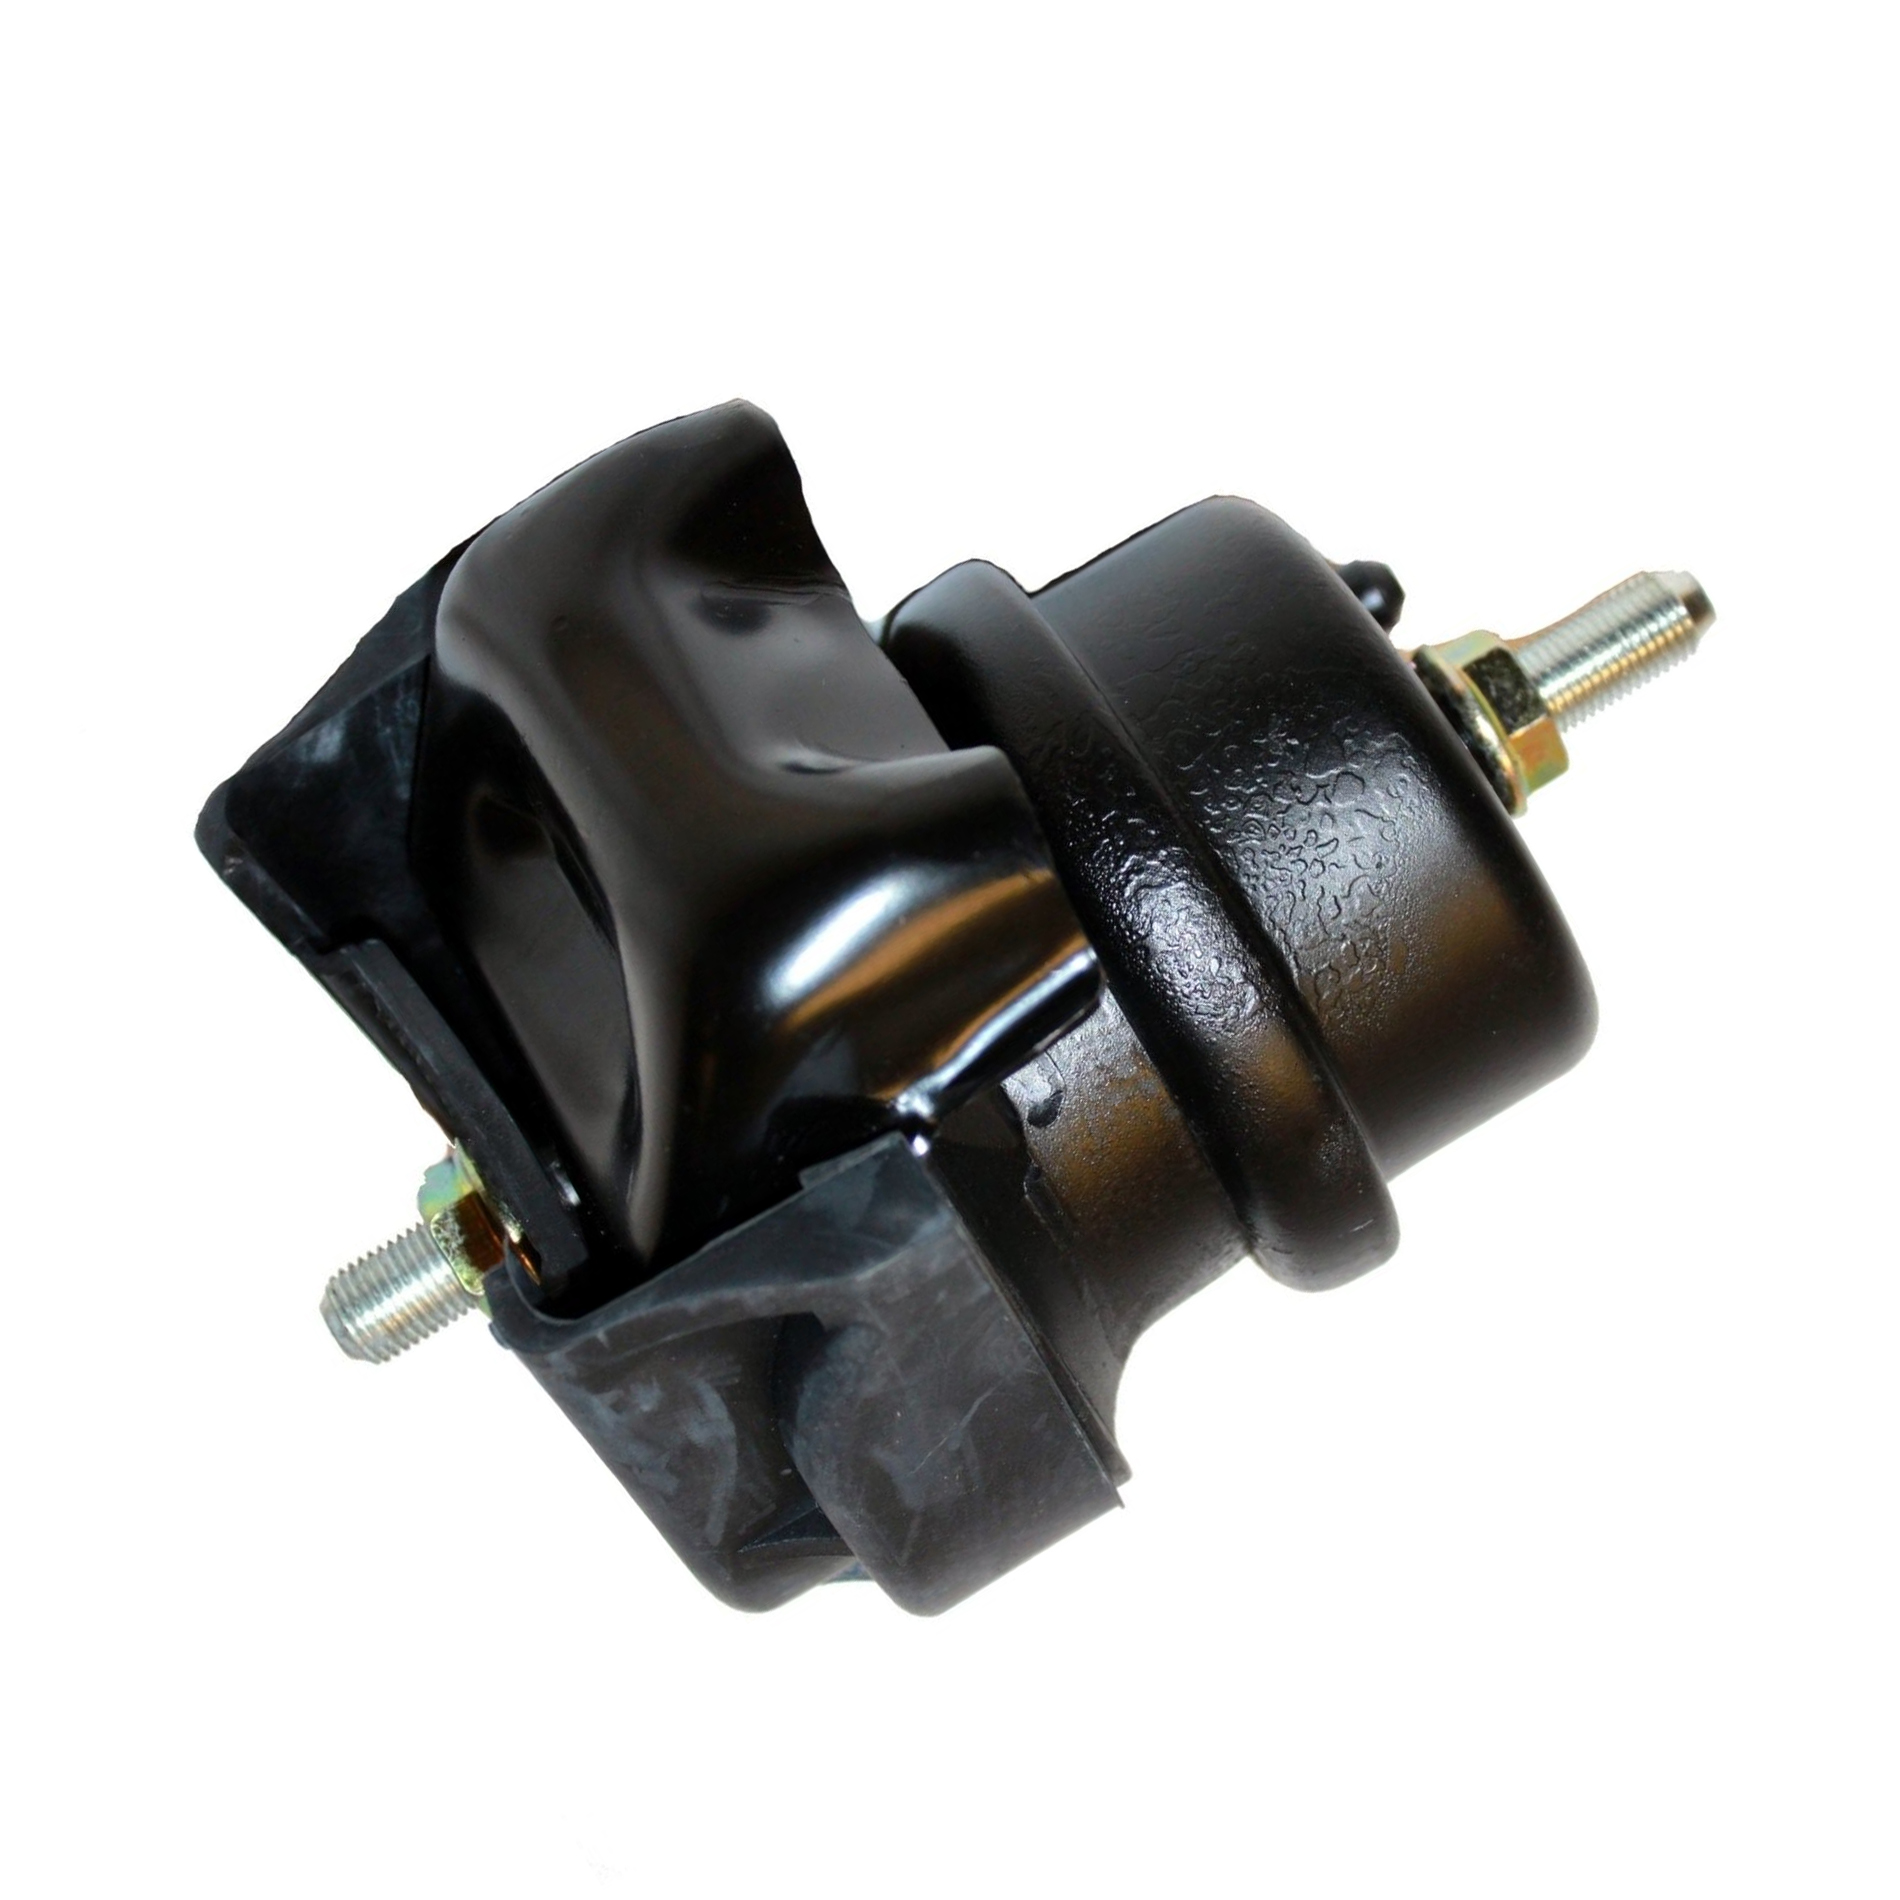 S1456 Front Left or Right Engine Motor Mount For 2001-2006 Lexus LS430 4.3L